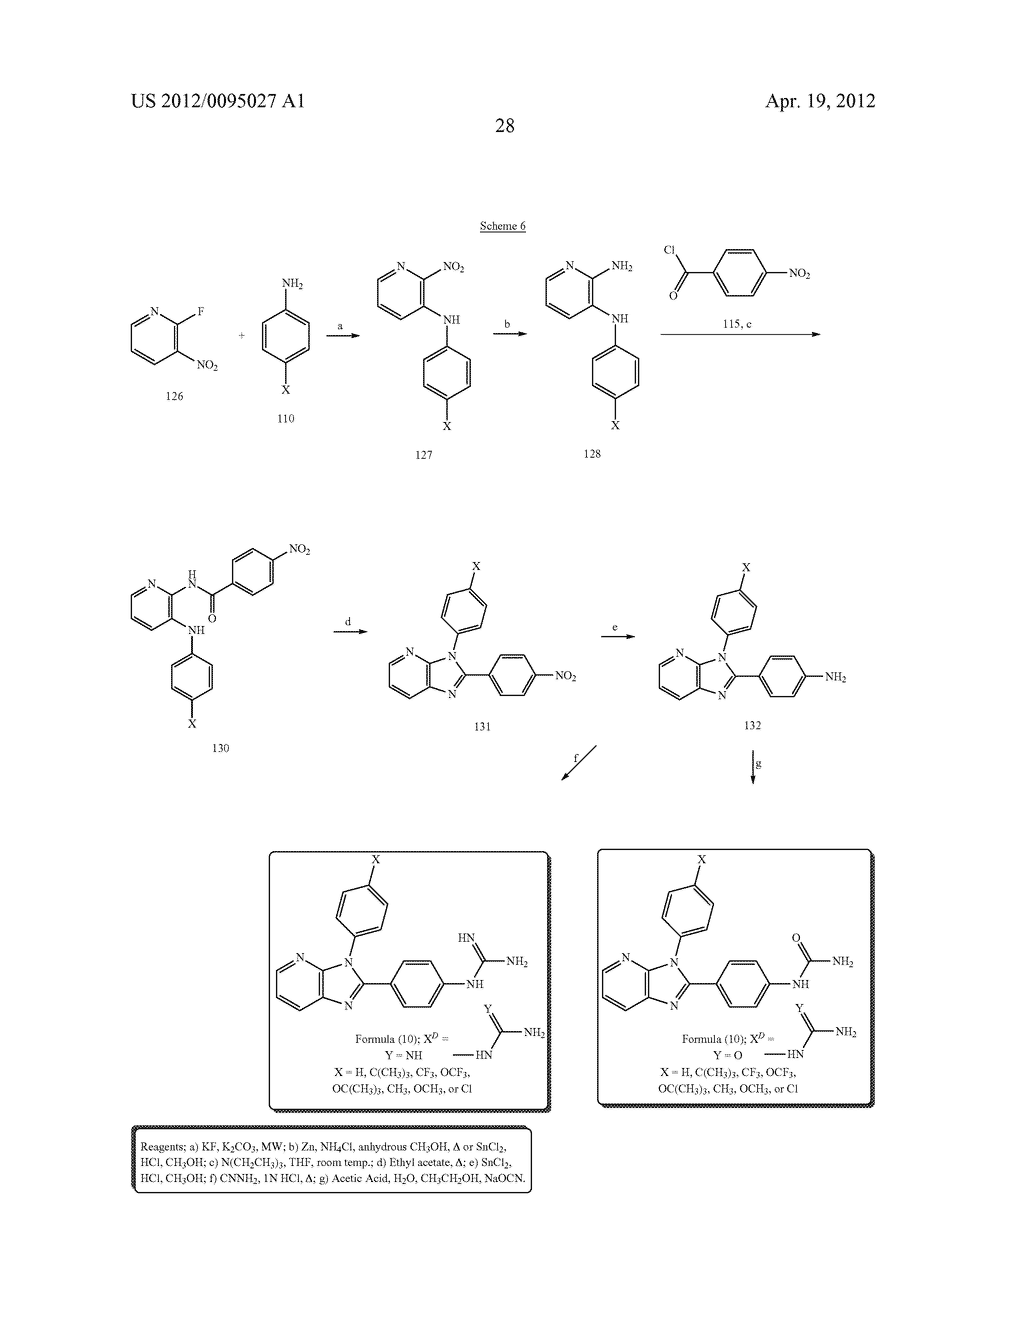 SYNTHESIS AND ANTI-PROLIFERATIVE EFFECT OF BENZIMIDAZOLE DERIVATIVES - diagram, schematic, and image 30